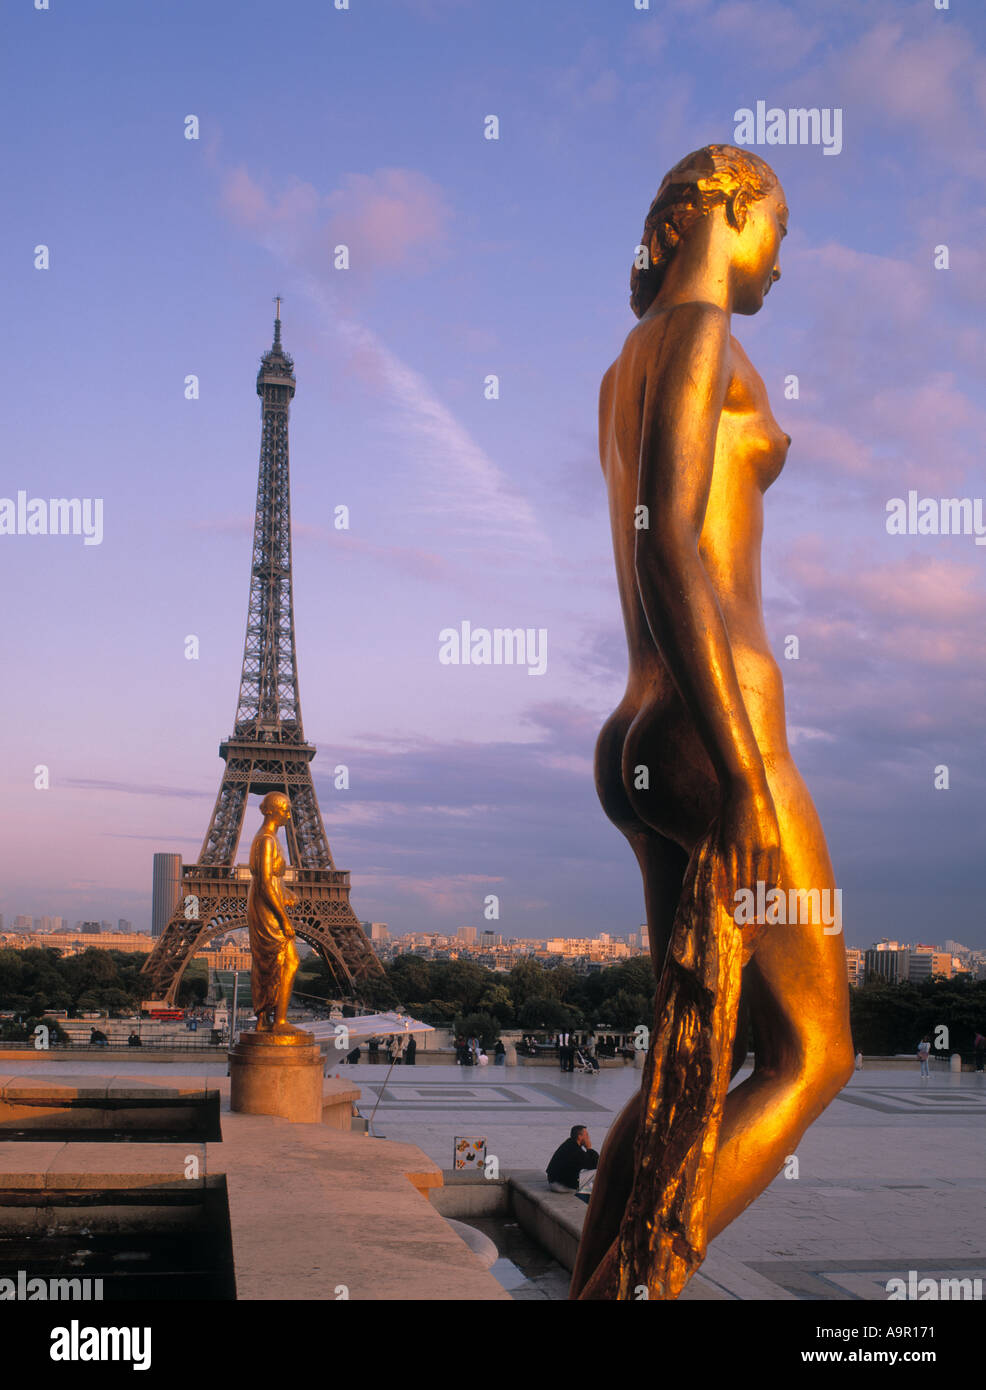 Eiffel Tower Chaillot Palace Statues Paris France at twilight - Stock Image